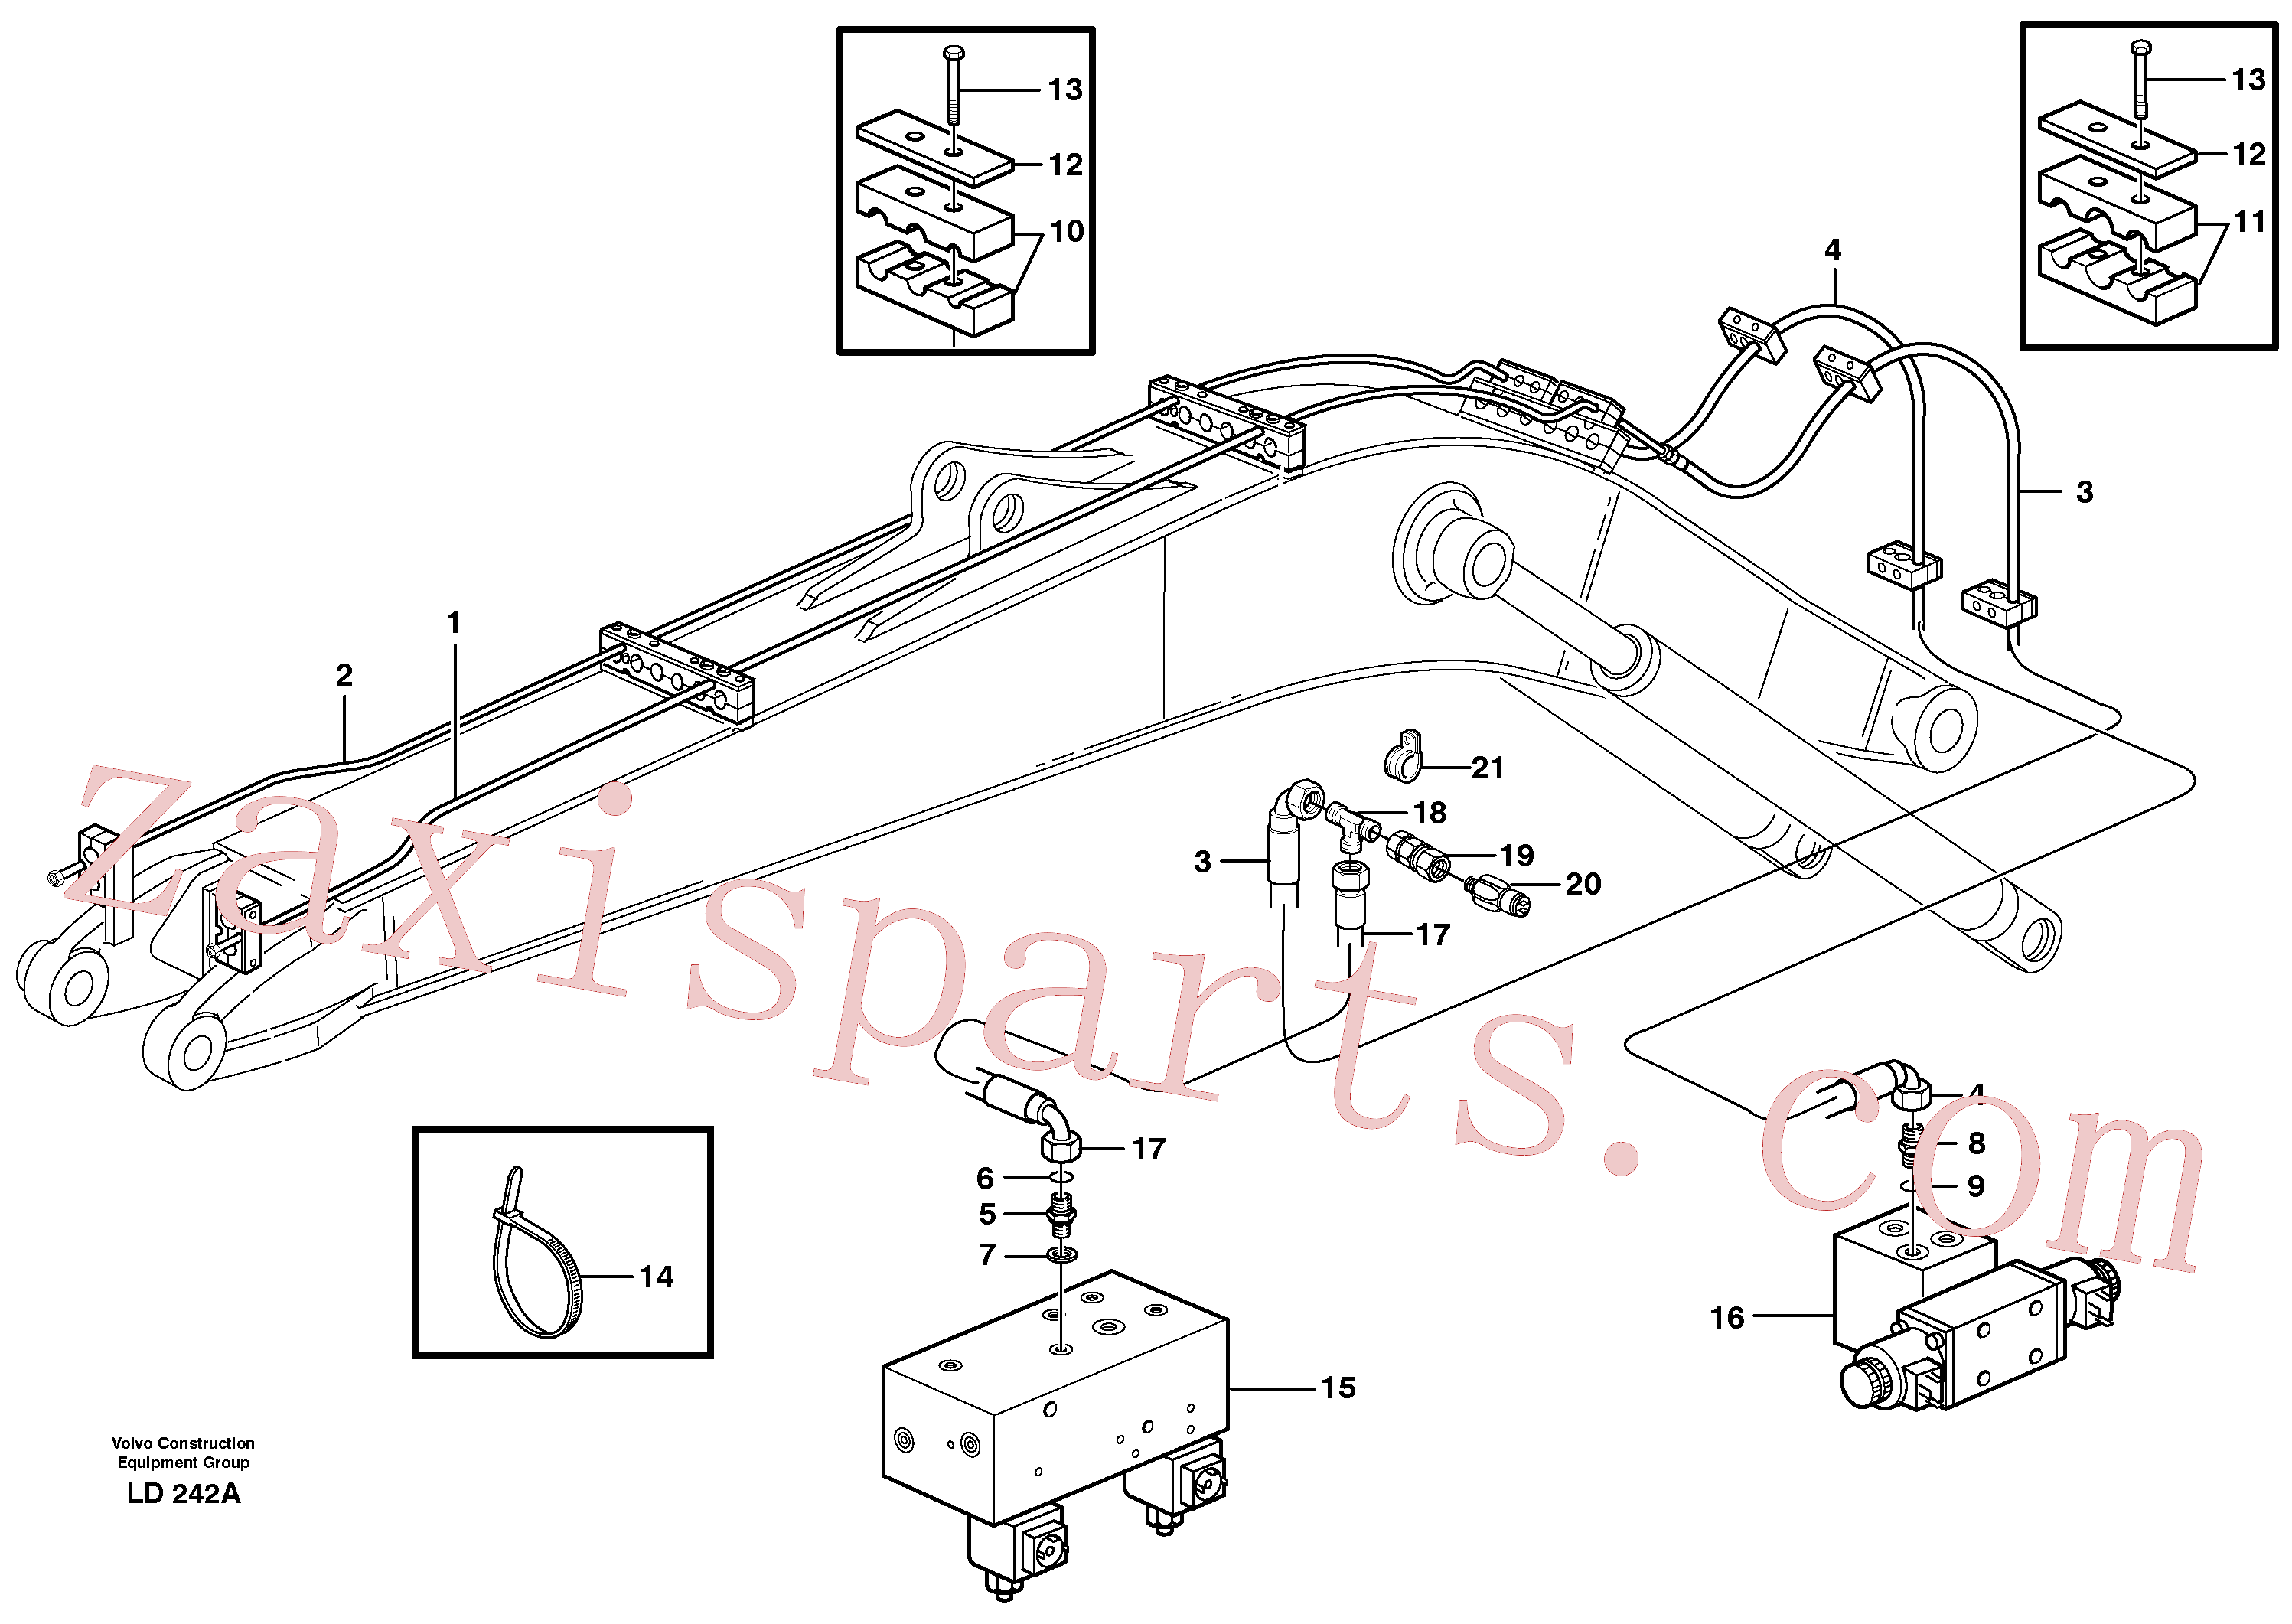 VOE14346686 for Volvo Hydr. quick fit equipm. on mono boom(LD242A assembly)